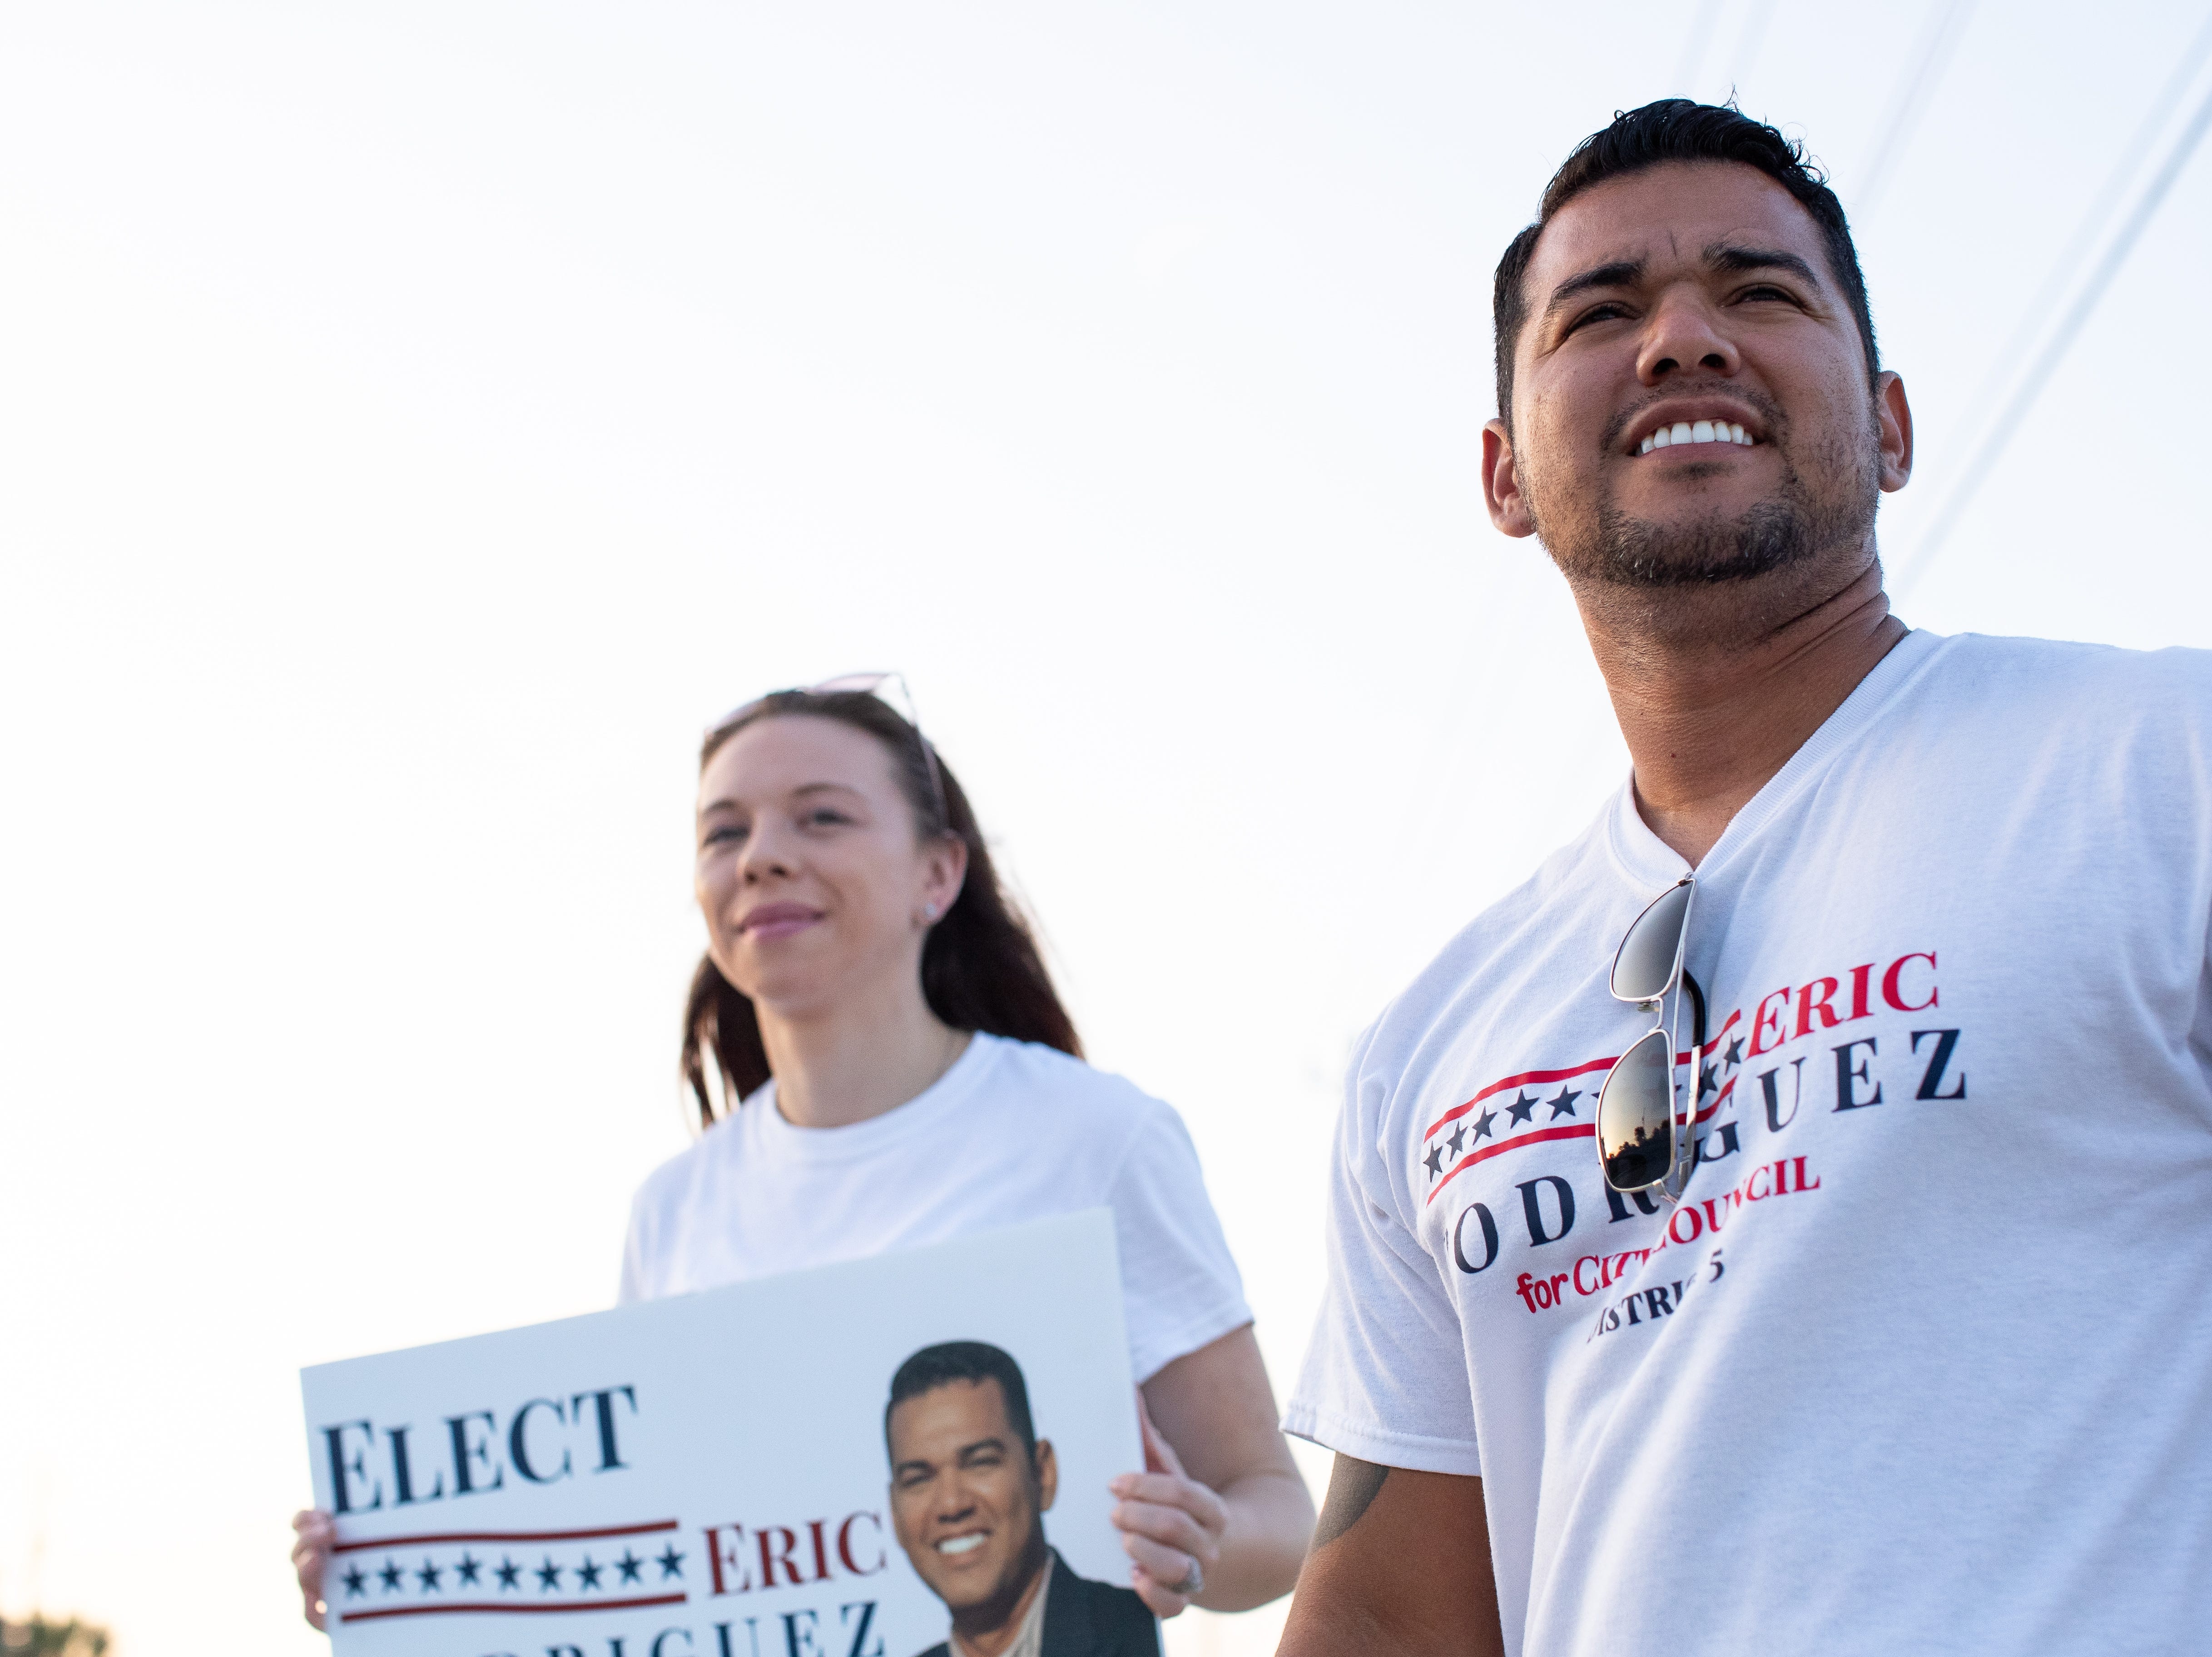 Candidate for Corpus Christi's City Council District 5 seat, Eric Rodriguez campaigns outside the Smith Elementary  School during election day on Tuesday, Nov. 6, 2018.